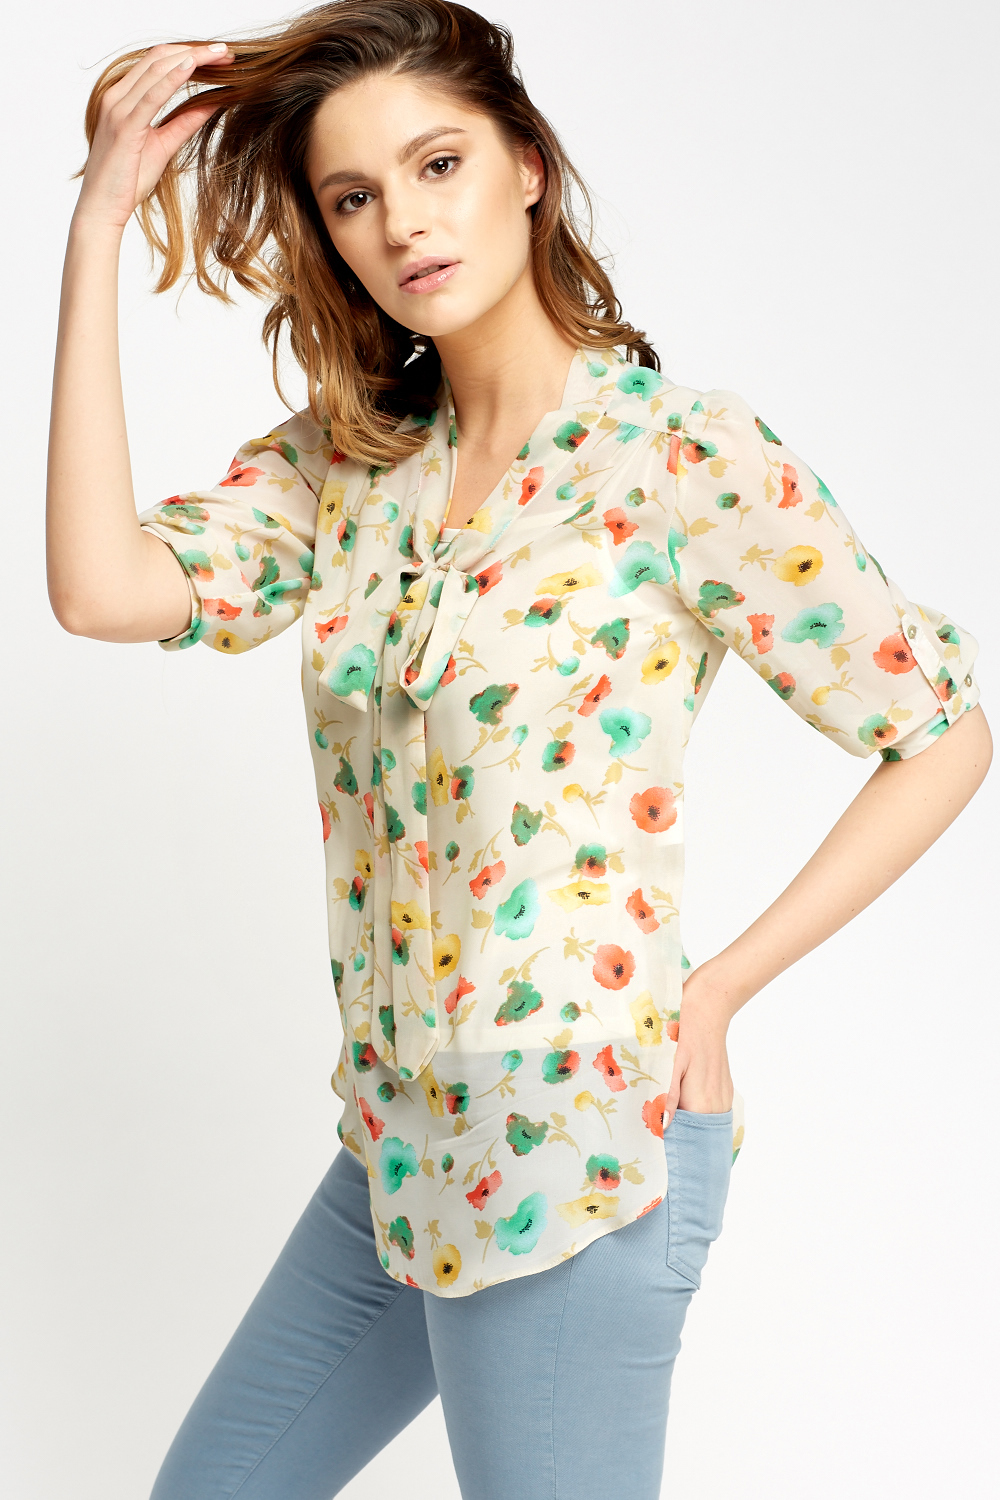 Mint Floral Tie Up Blouse - Just £5 ea8bed2b0